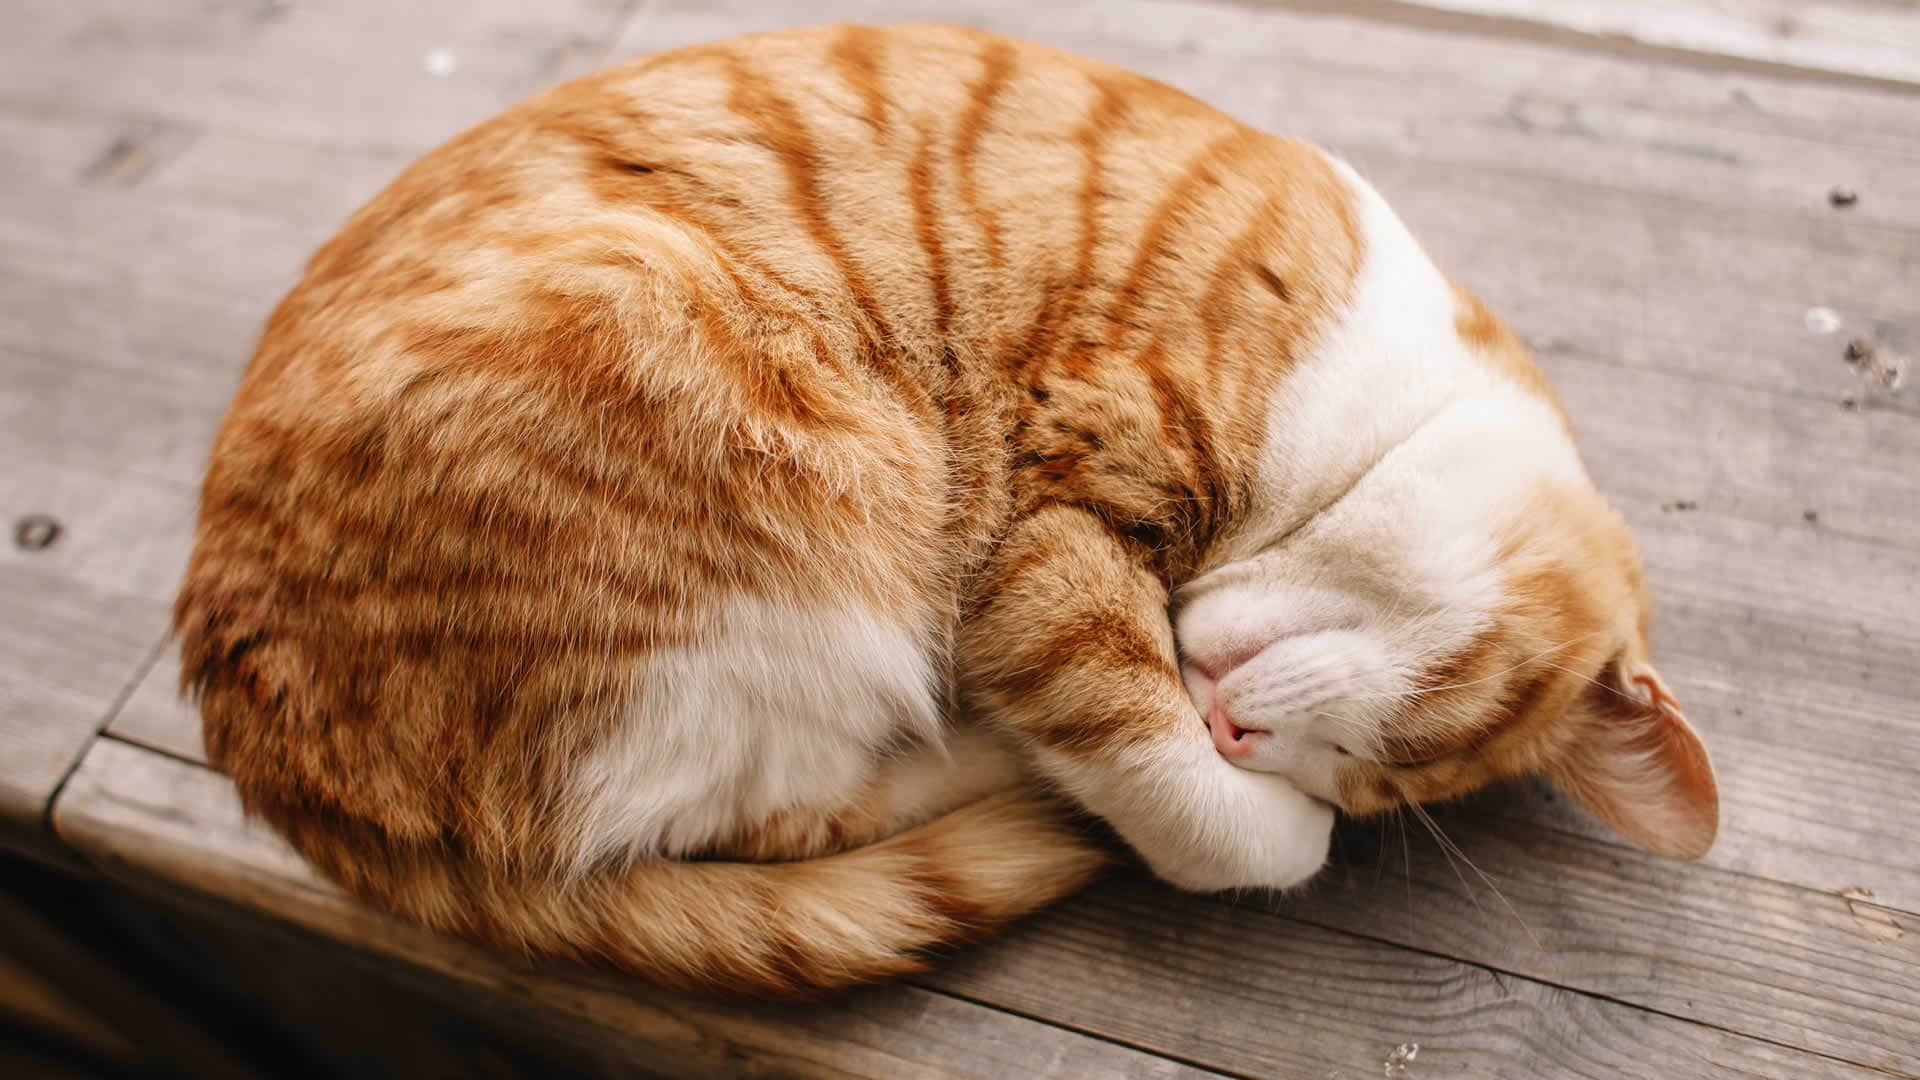 Cat sleeping in curled up in a ball position